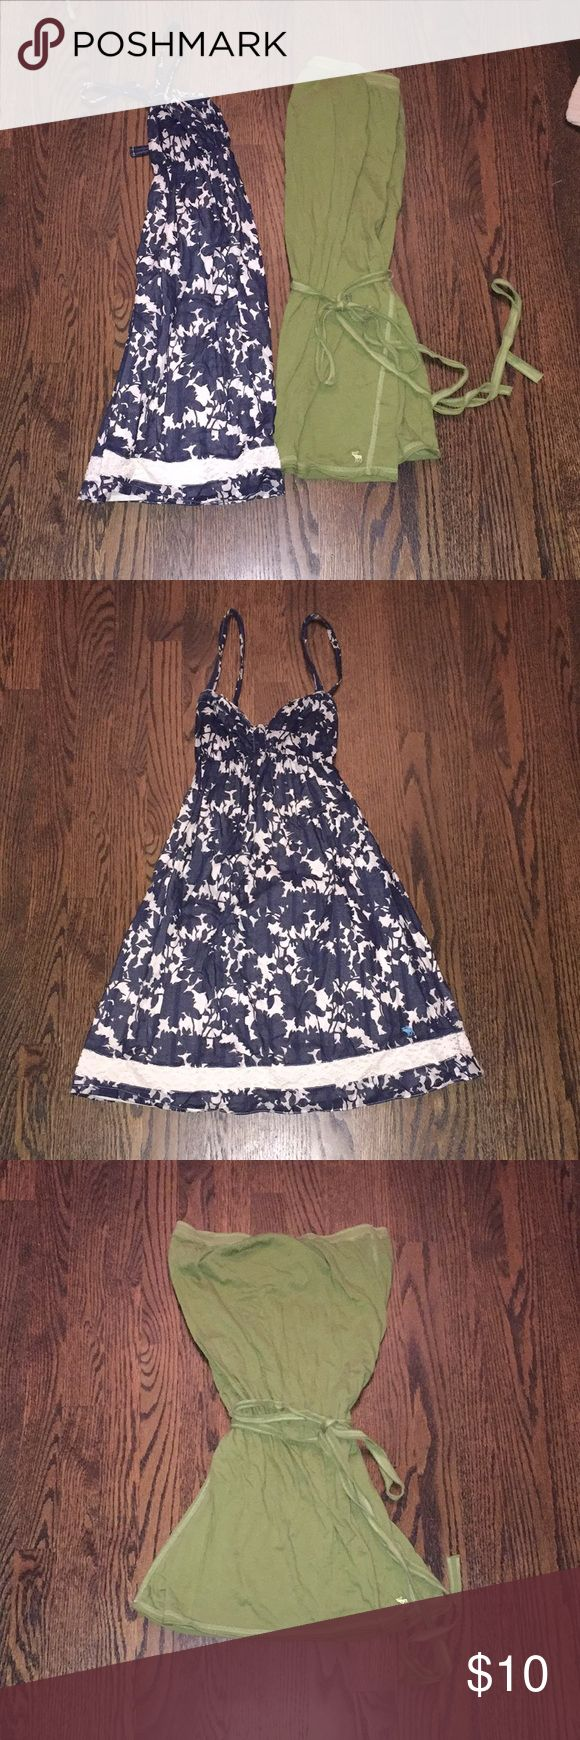 Abercrombie and Fitch dresses Both dresses are size medium! Abercrombie & Fitch Dresses Mini